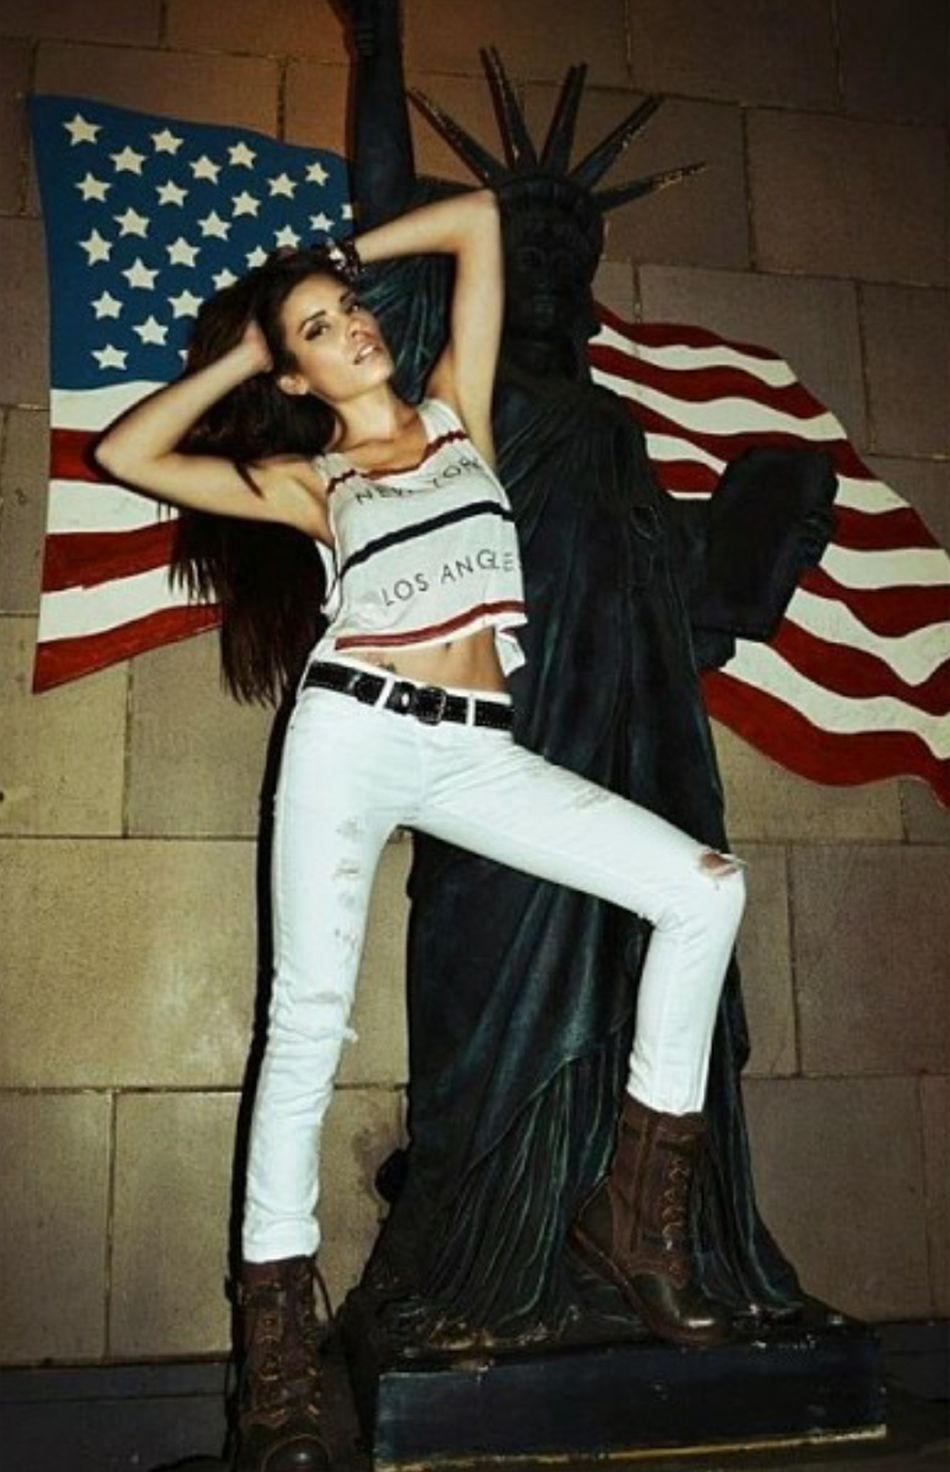 LS Studios Model American NYC La Street Fashion Laurencalaway Lsstudios Fashion VivaAmerica Harddayswork Ziginy Beauty Gorgeous Beautiful Hair Faces Of EyeEm Sexygirl Hot That's Me Face Me Cute Lips Eyes